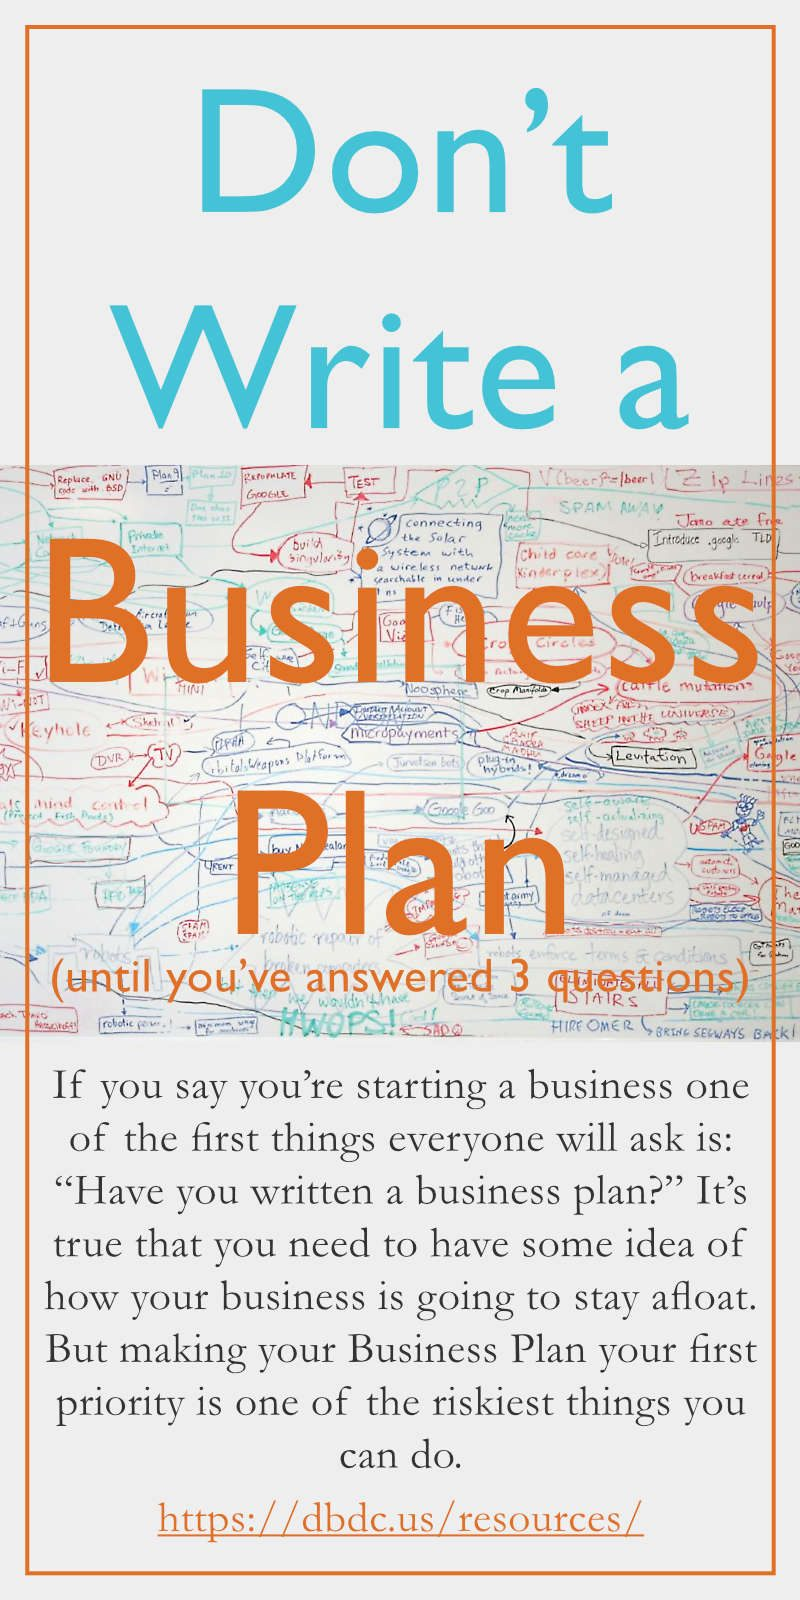 how to write a great business plan Buy how to write a great business plan (harvard business review classics) by  william a sahlman (isbn: 9781422121429) from amazon's book store.